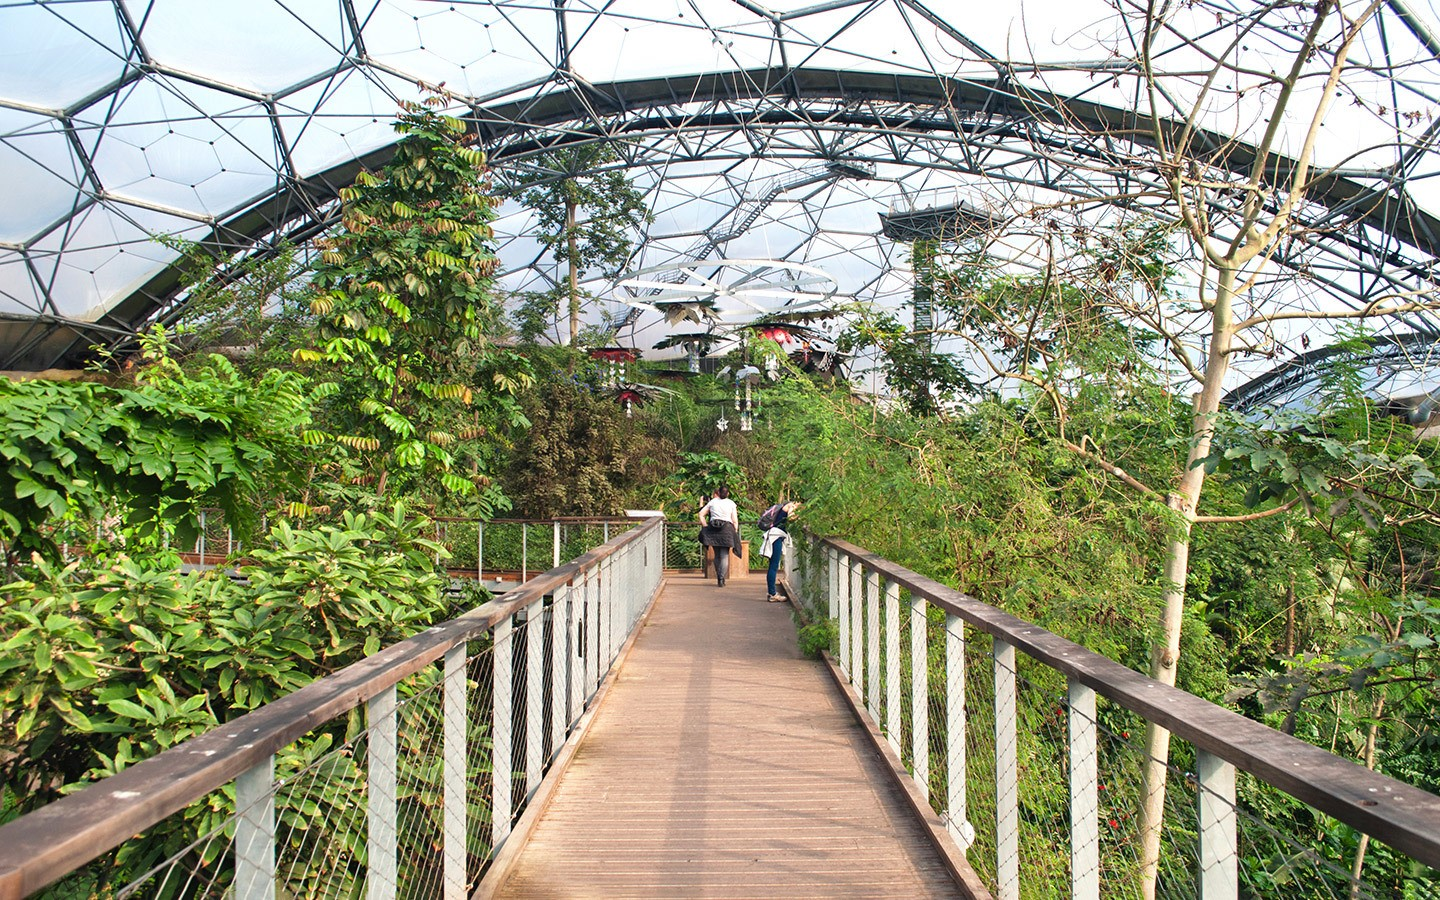 Rainforest canopy walkway at the Eden Project in St Austell, Cornwall